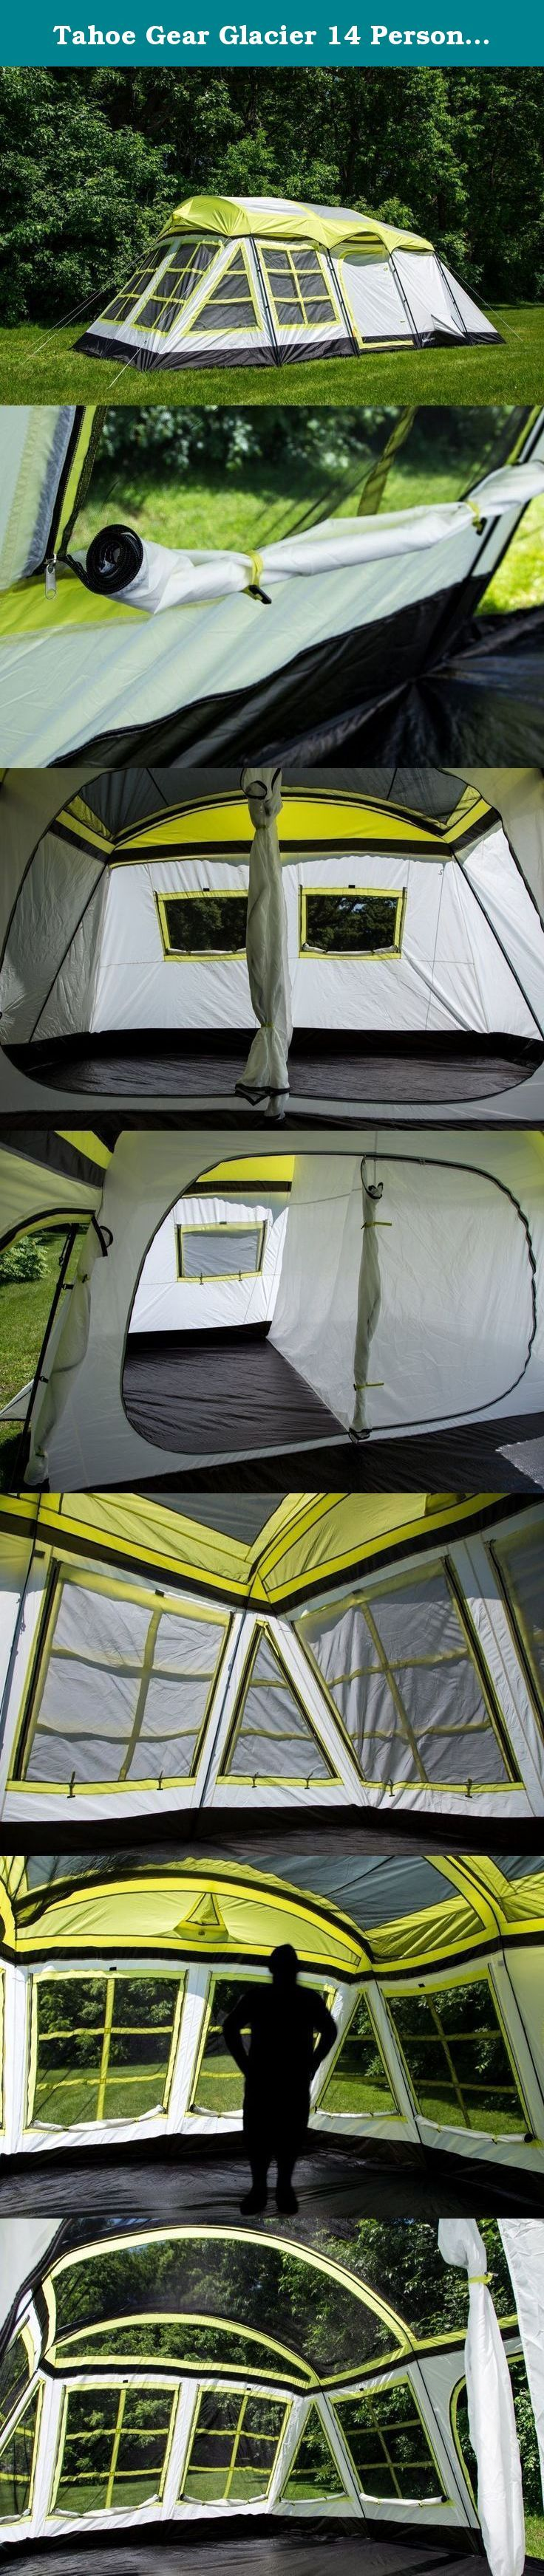 Tahoe Gear Glacier 14 Person 3-Season Family Cabin Camping Tent - Green/Grey. Explore the great outdoors and setup camp with ease in the new Tahoe Gear Glacier Tent. Great for comfortably sleeping up to 12 or 14, the Glacier is ideal for a night with the family or a longer excursion. Enjoy day time in the airy, open screen room or a few restful hours in the separate master suite area. Equipped with easy setup poles, stakes, guy ropes, and rain fly for unexpected weather, this tent is…